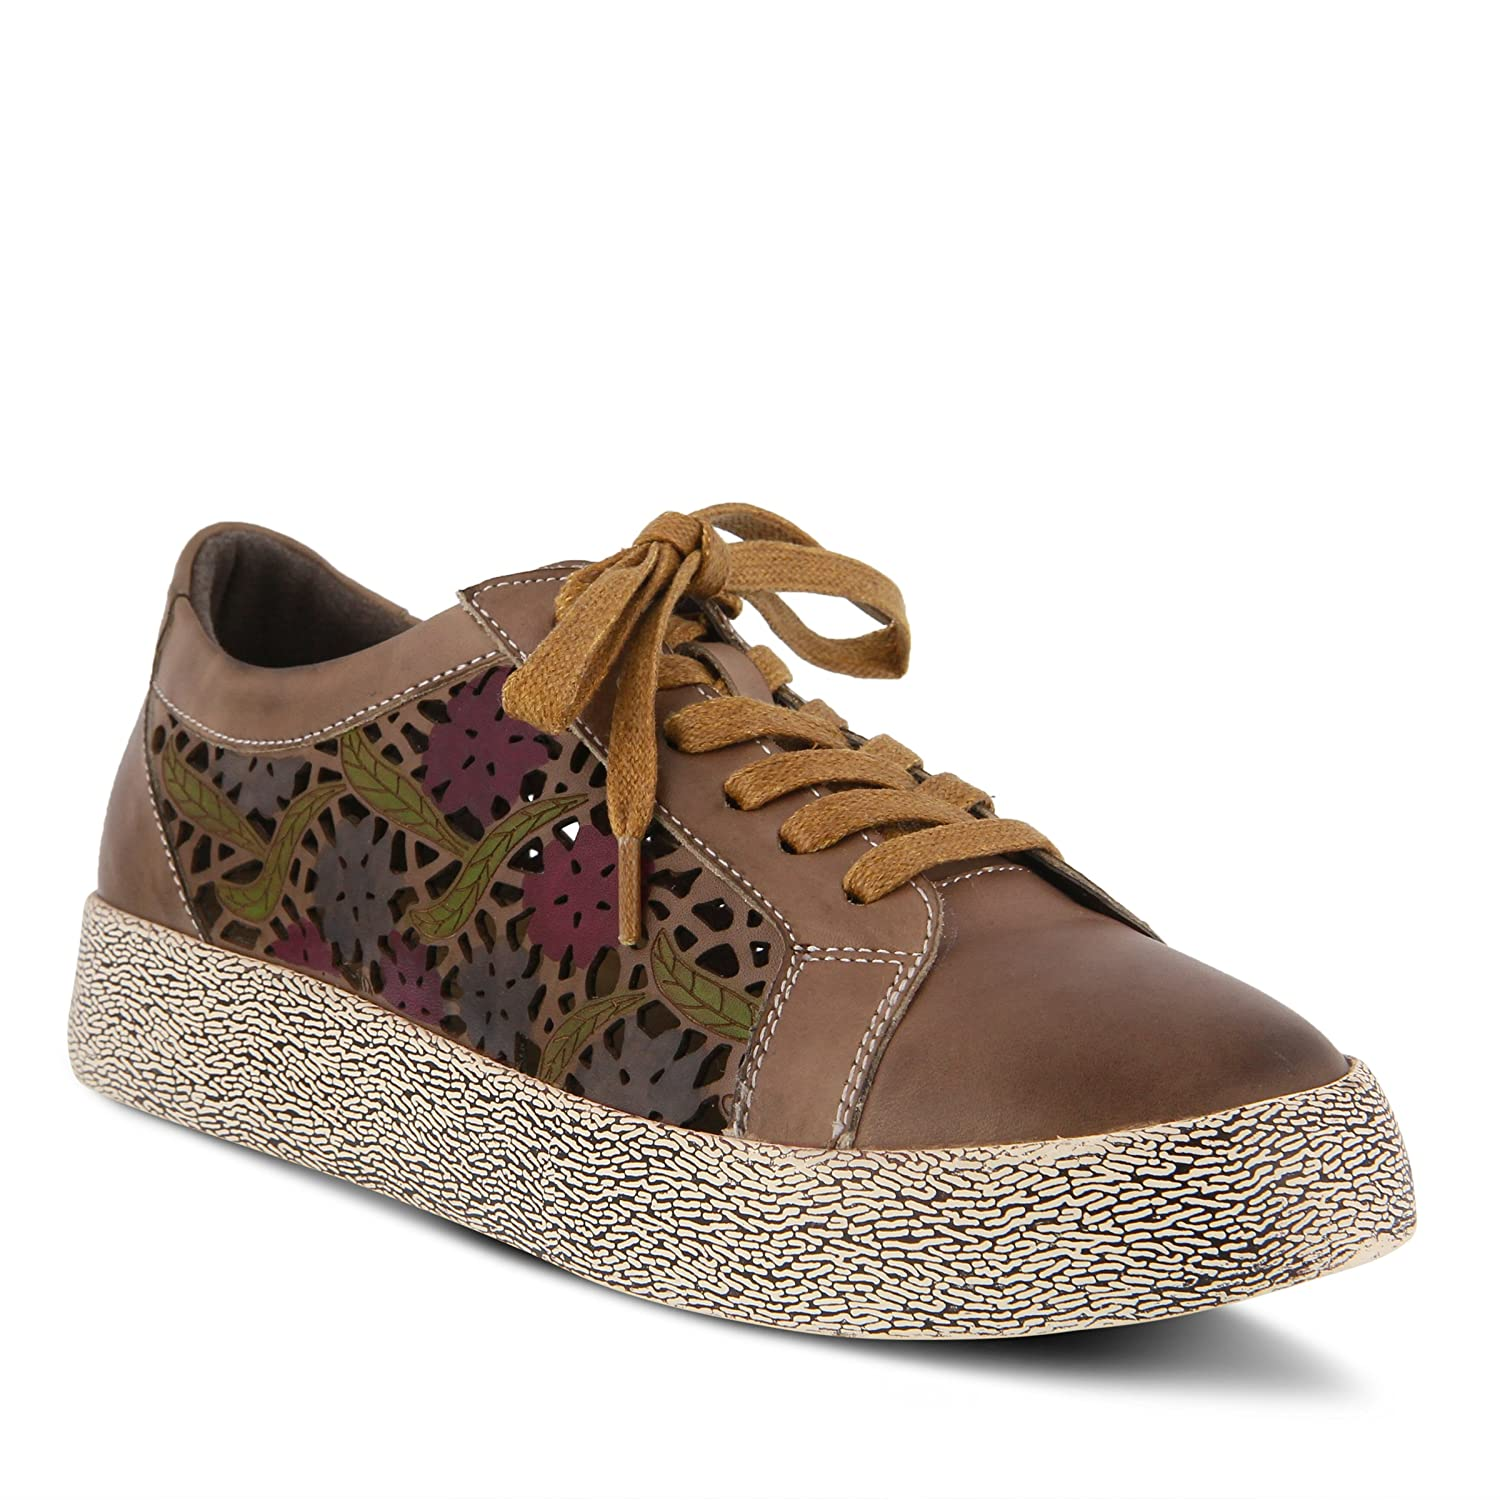 L`Artiste by Spring Step Womens Leather Sneakers MEA Taupe EU Size 38